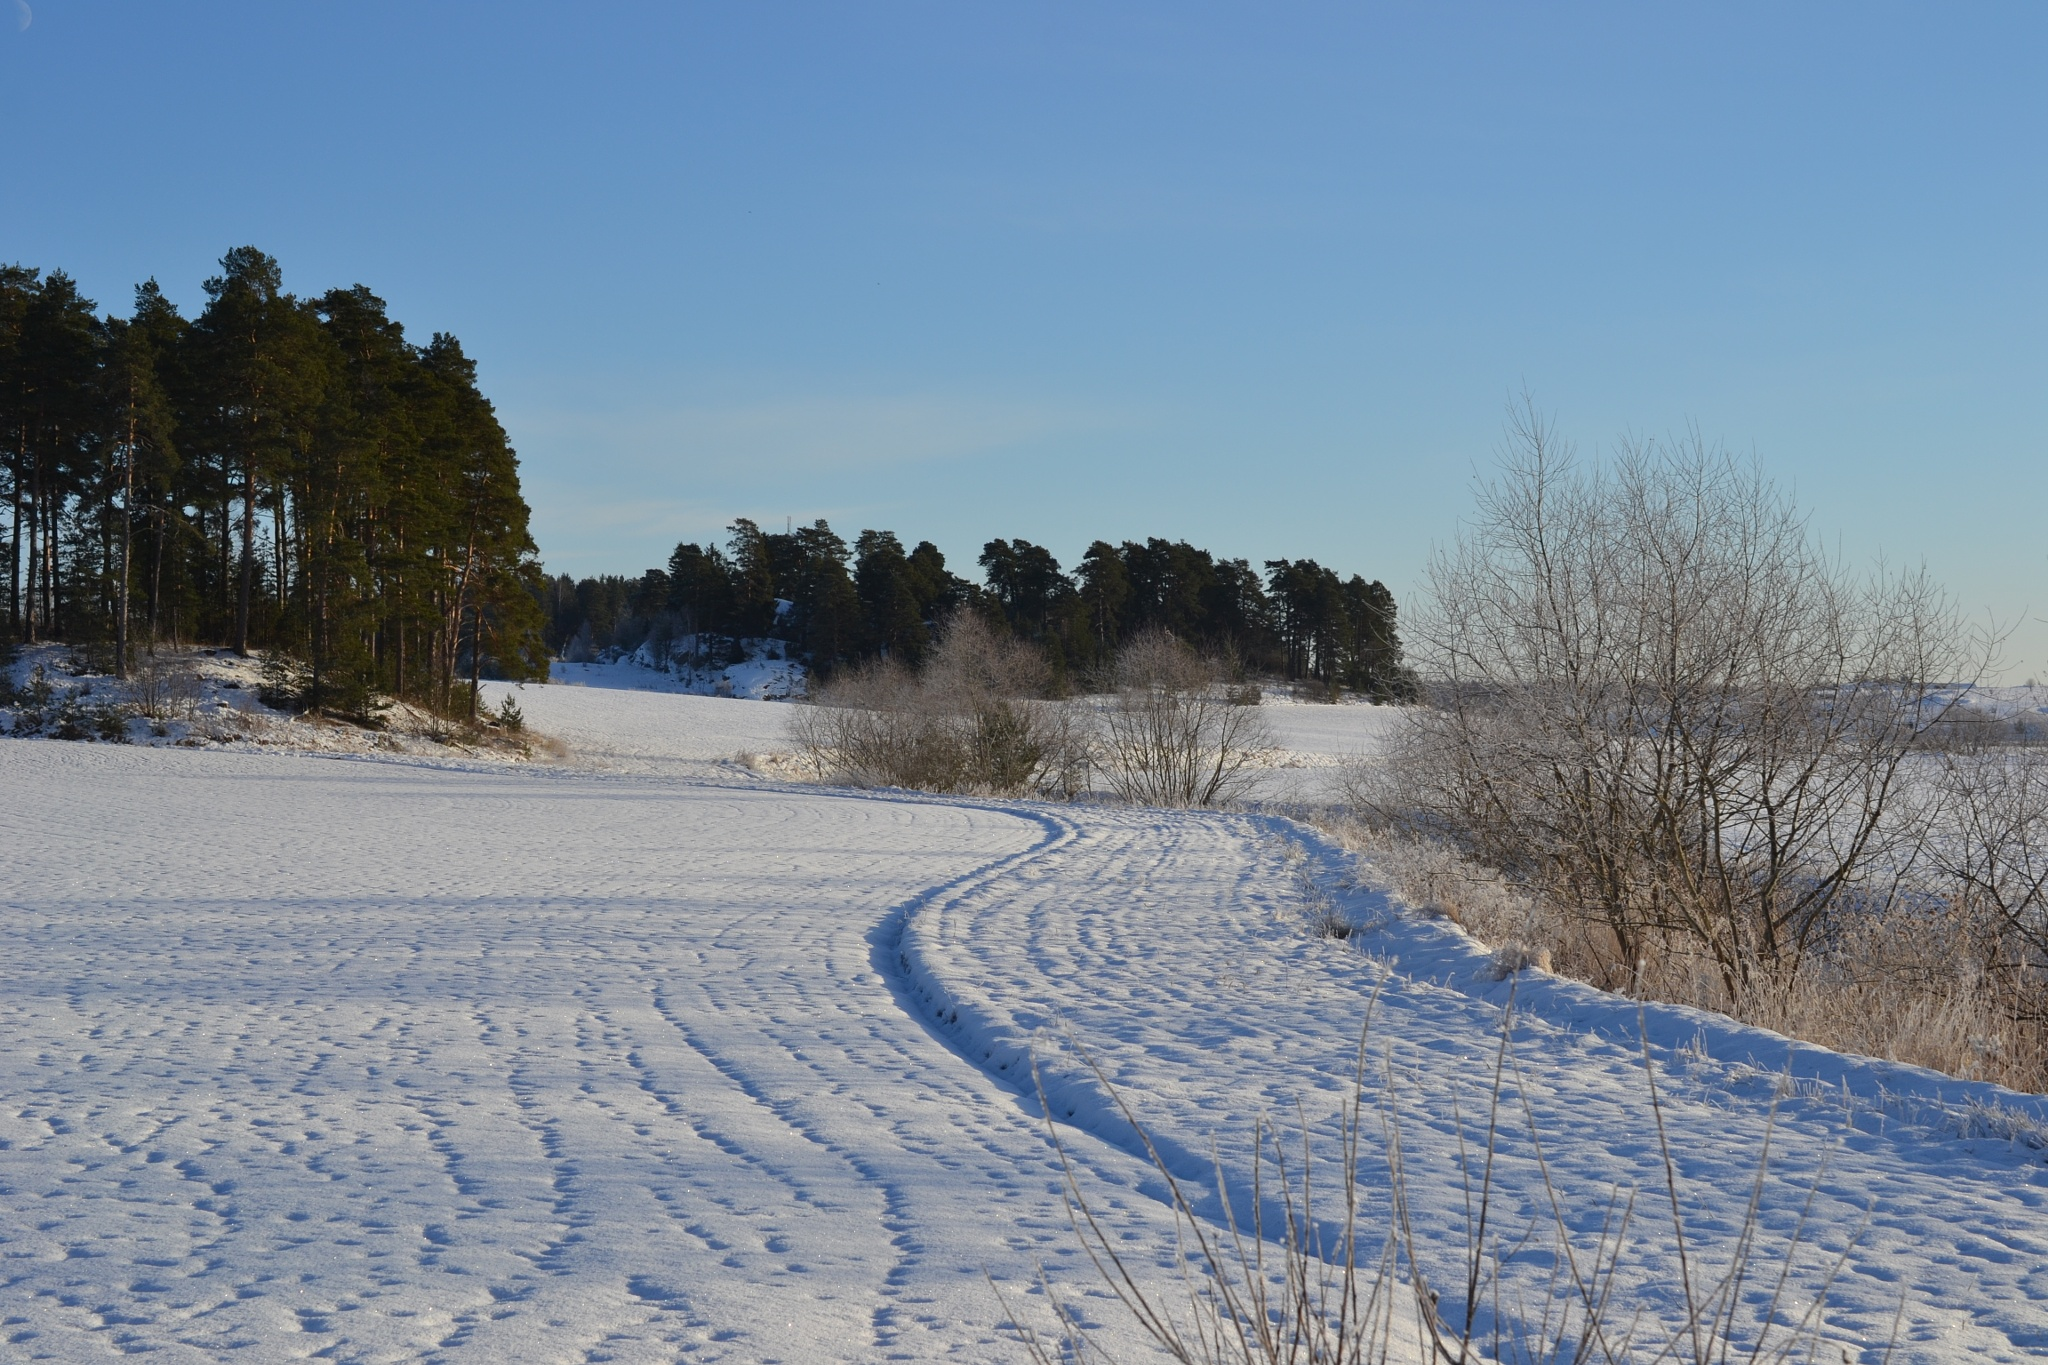 Winter curves by sweteach